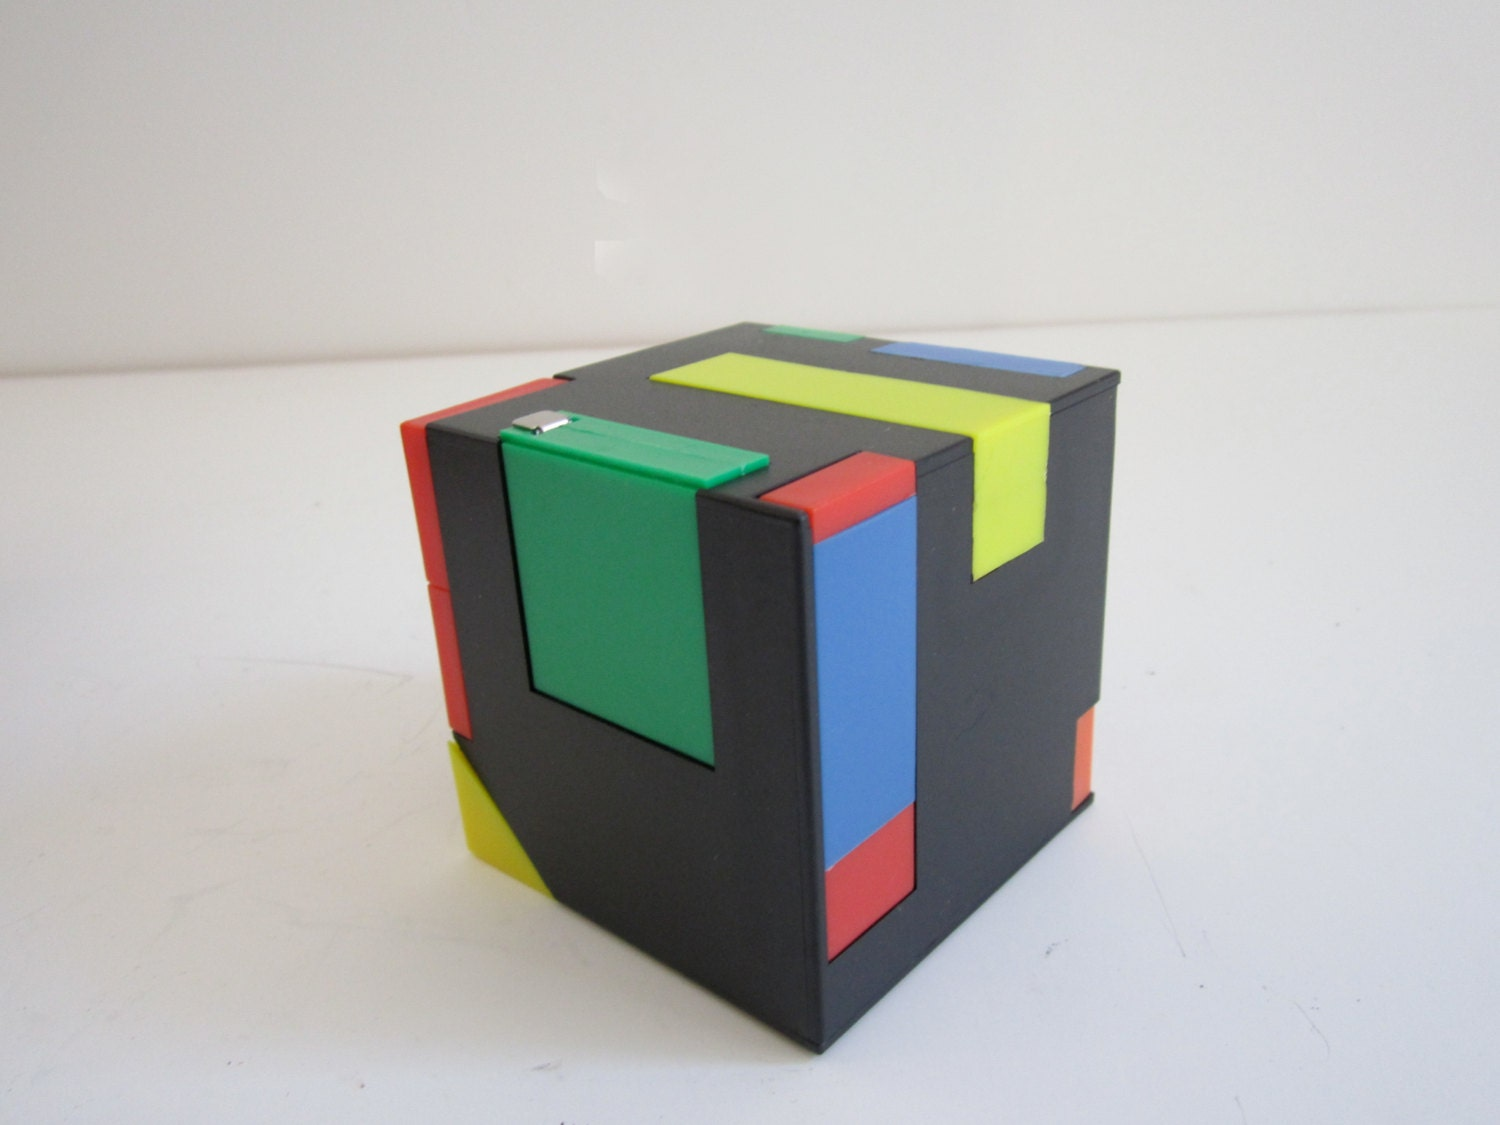 Neon Rubix Cube Clip Art Magic cube desk organizer